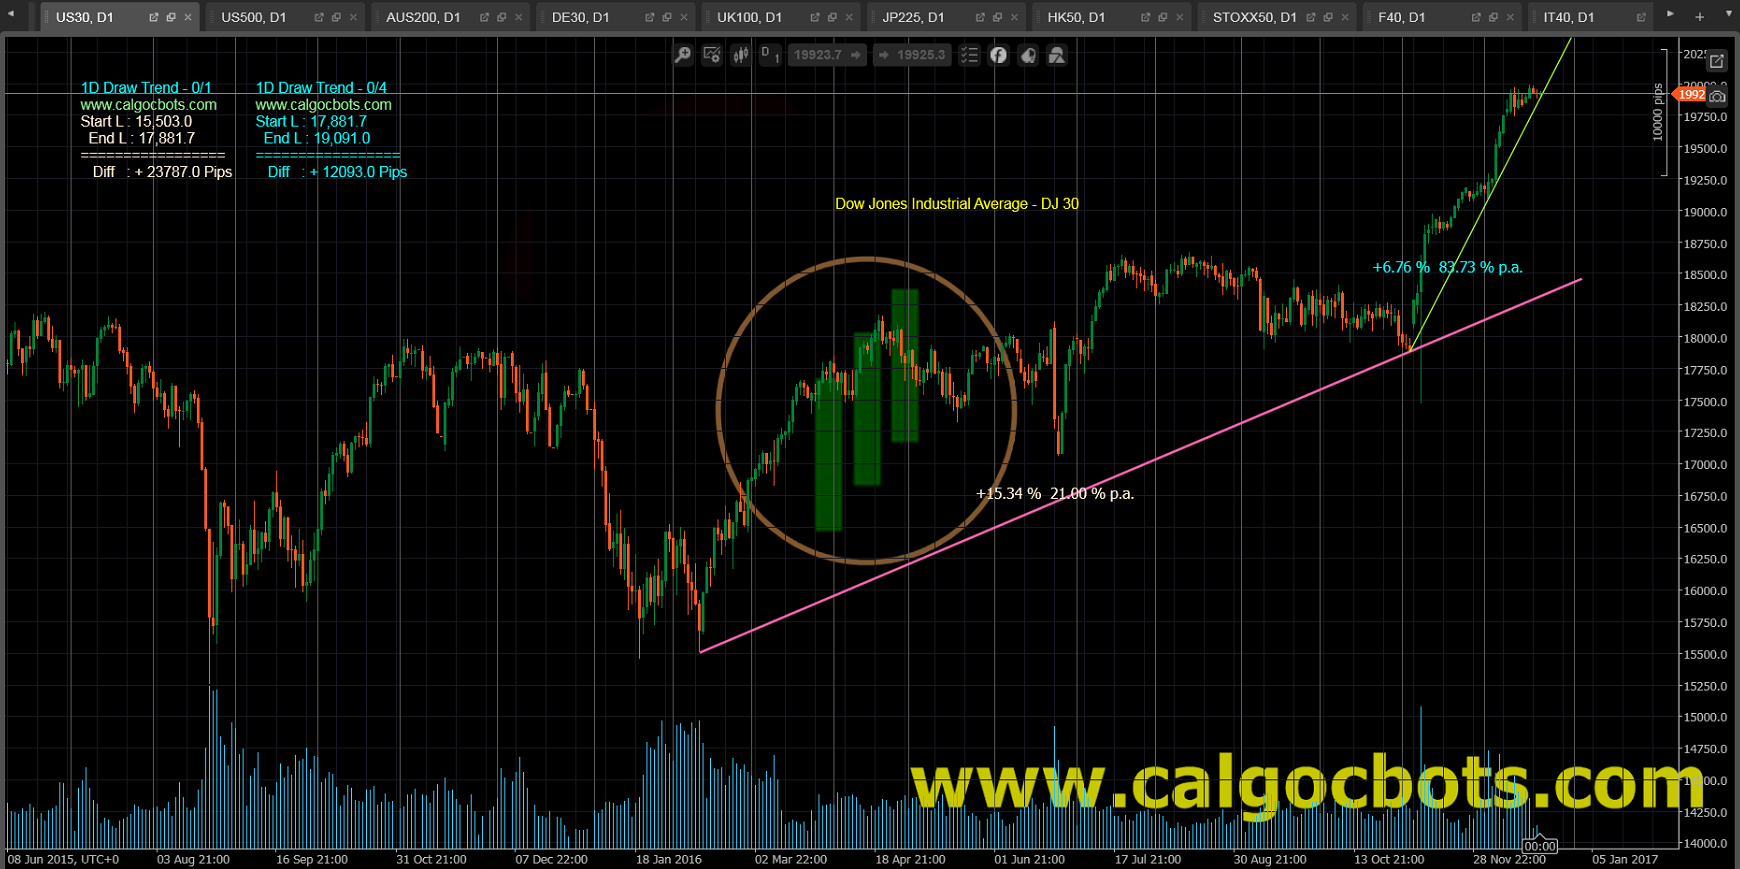 1D Draw Trend - cAlgo and cTrader Indicator - DJ 30 Index Daily Chart - 003